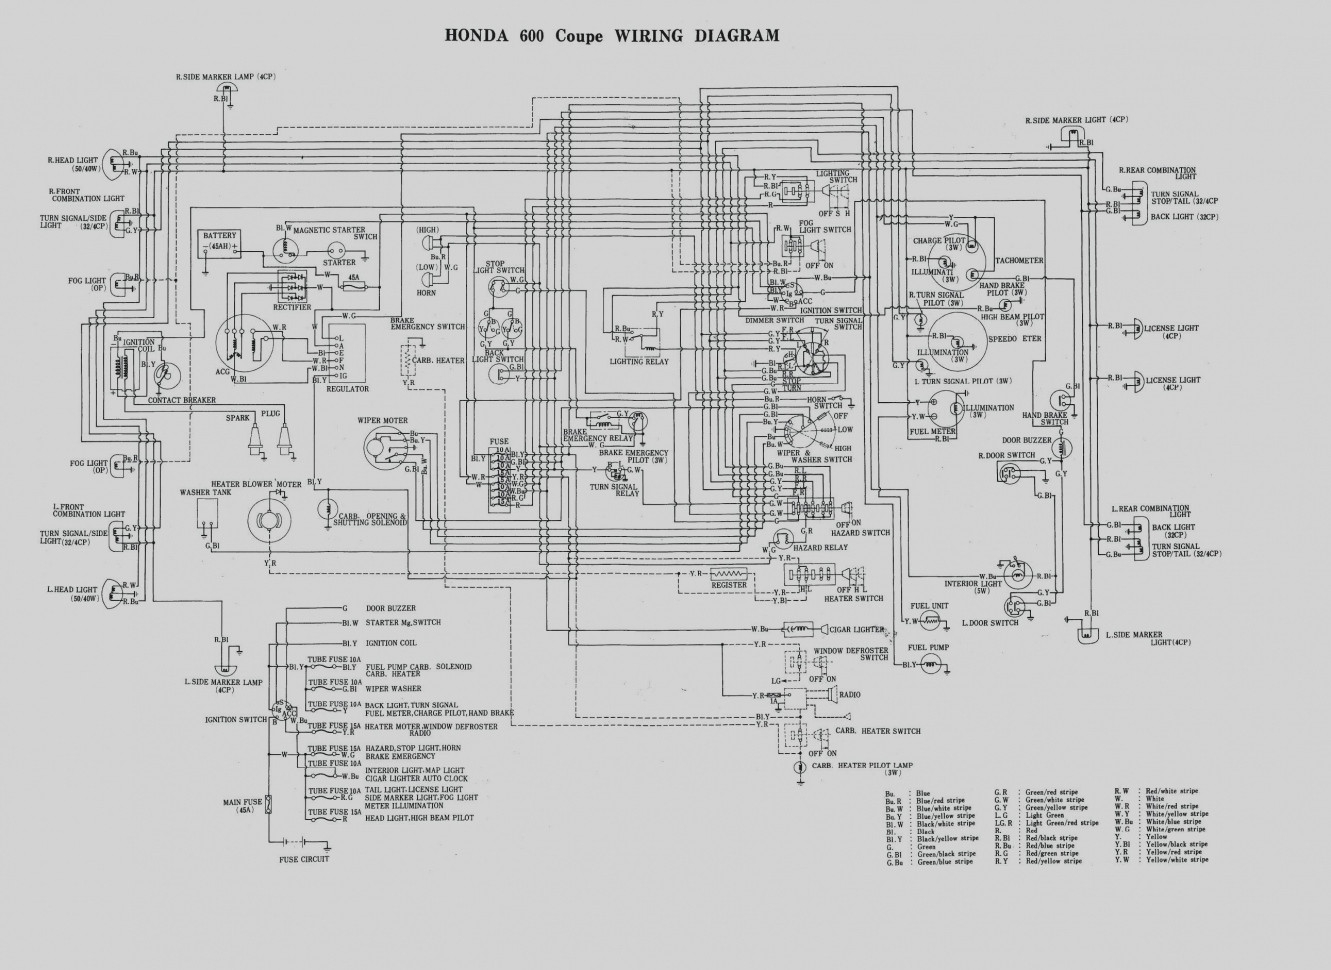 Honda Wiring Diagram 2008 - Technical Diagrams on